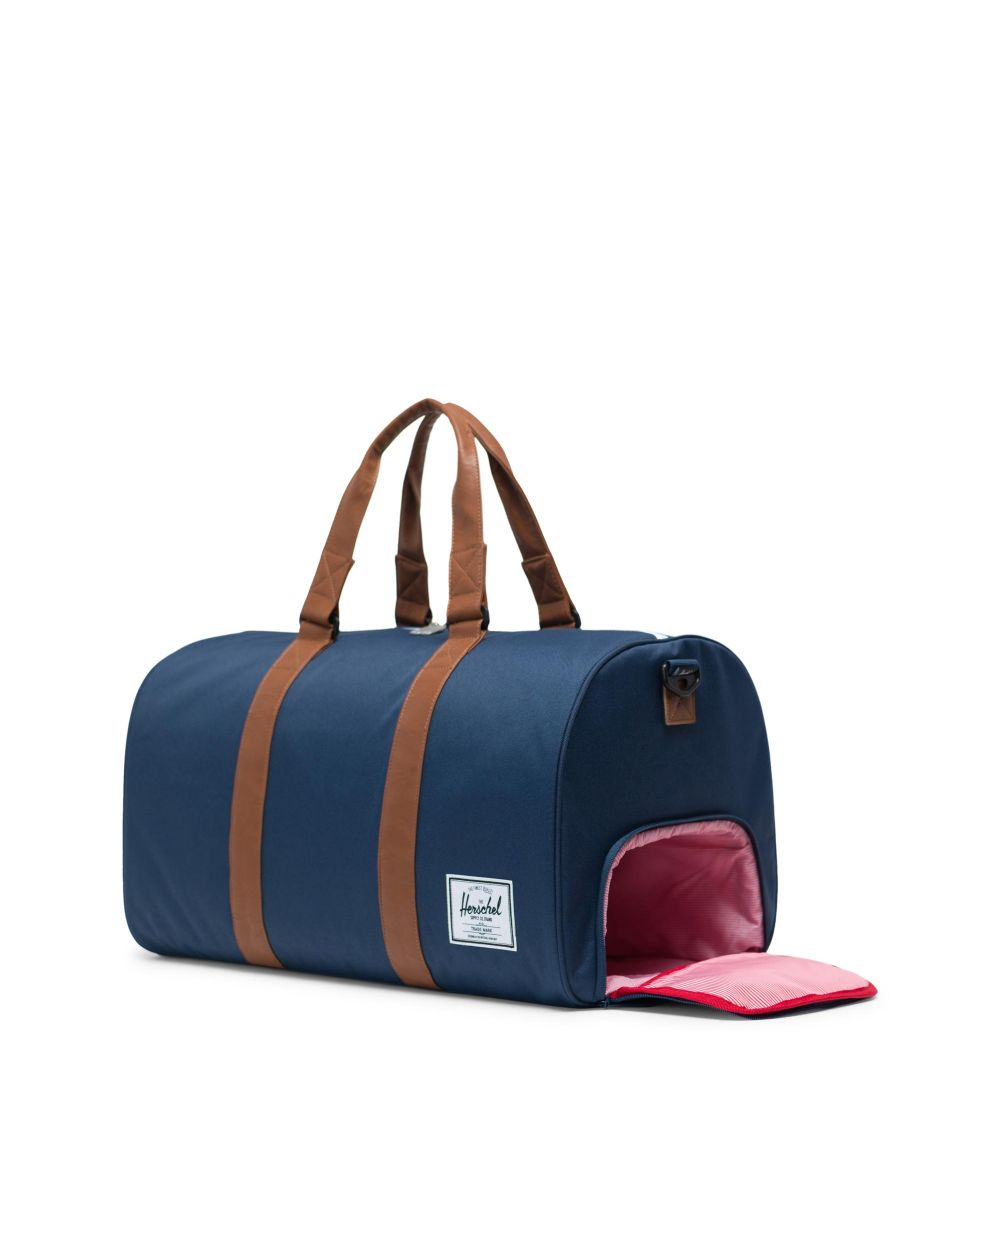 HERSCHEL BACKPACKS NOVEL DUFFLE - NAVY/TAN SYNTHETIC LEATHER